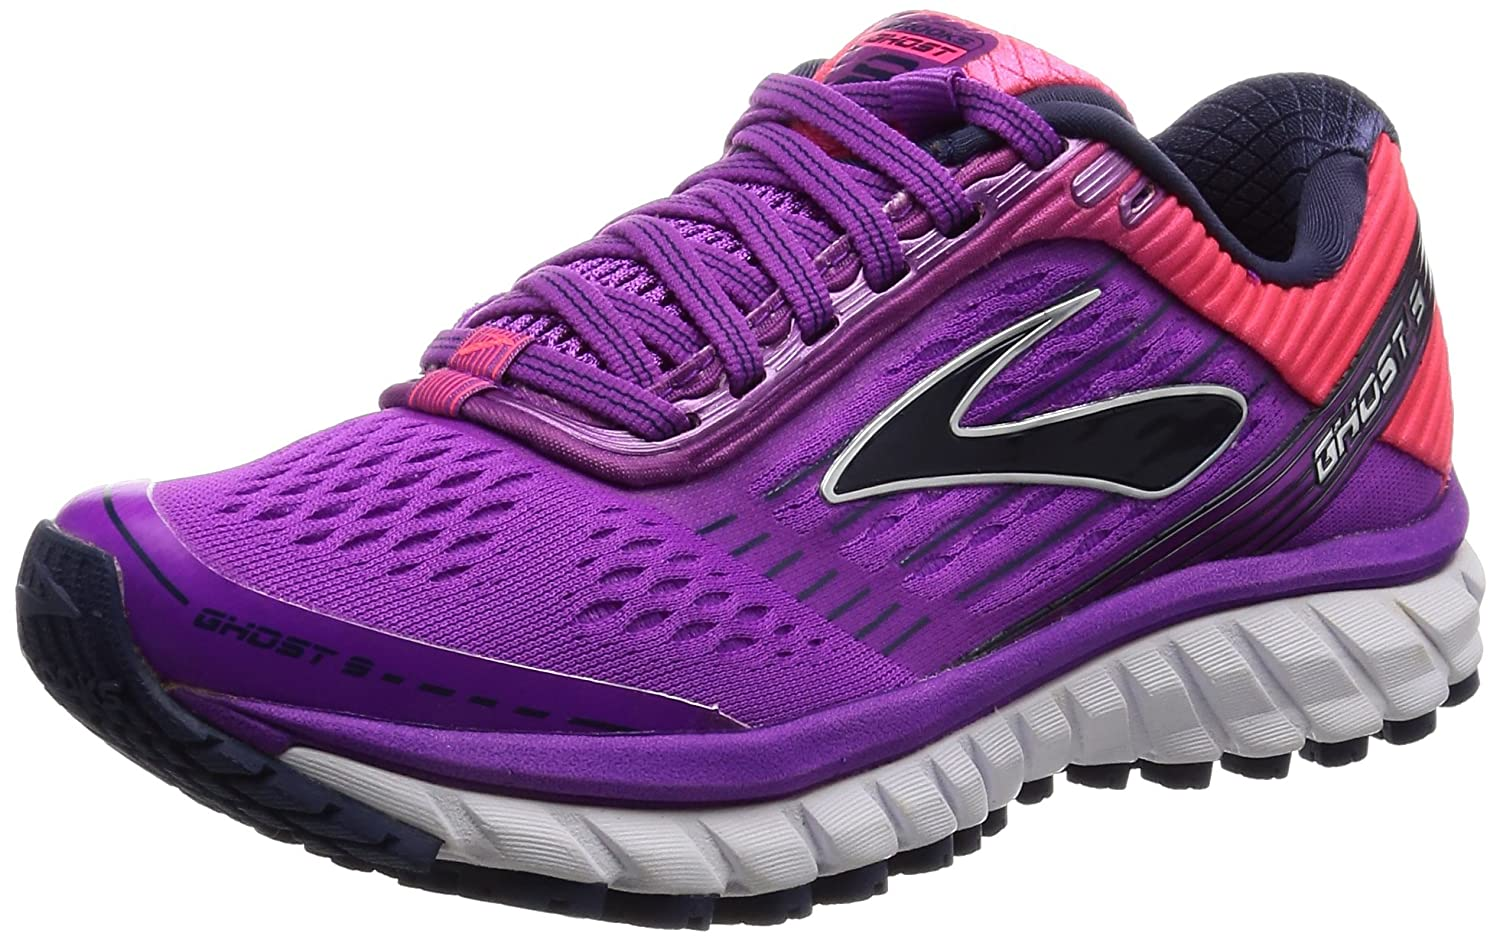 Brooks Womens Ghost 9 B01GEVTBD0 5 B(M) US|Purple Cactus Flower/Diva Pink/Patriot Blue